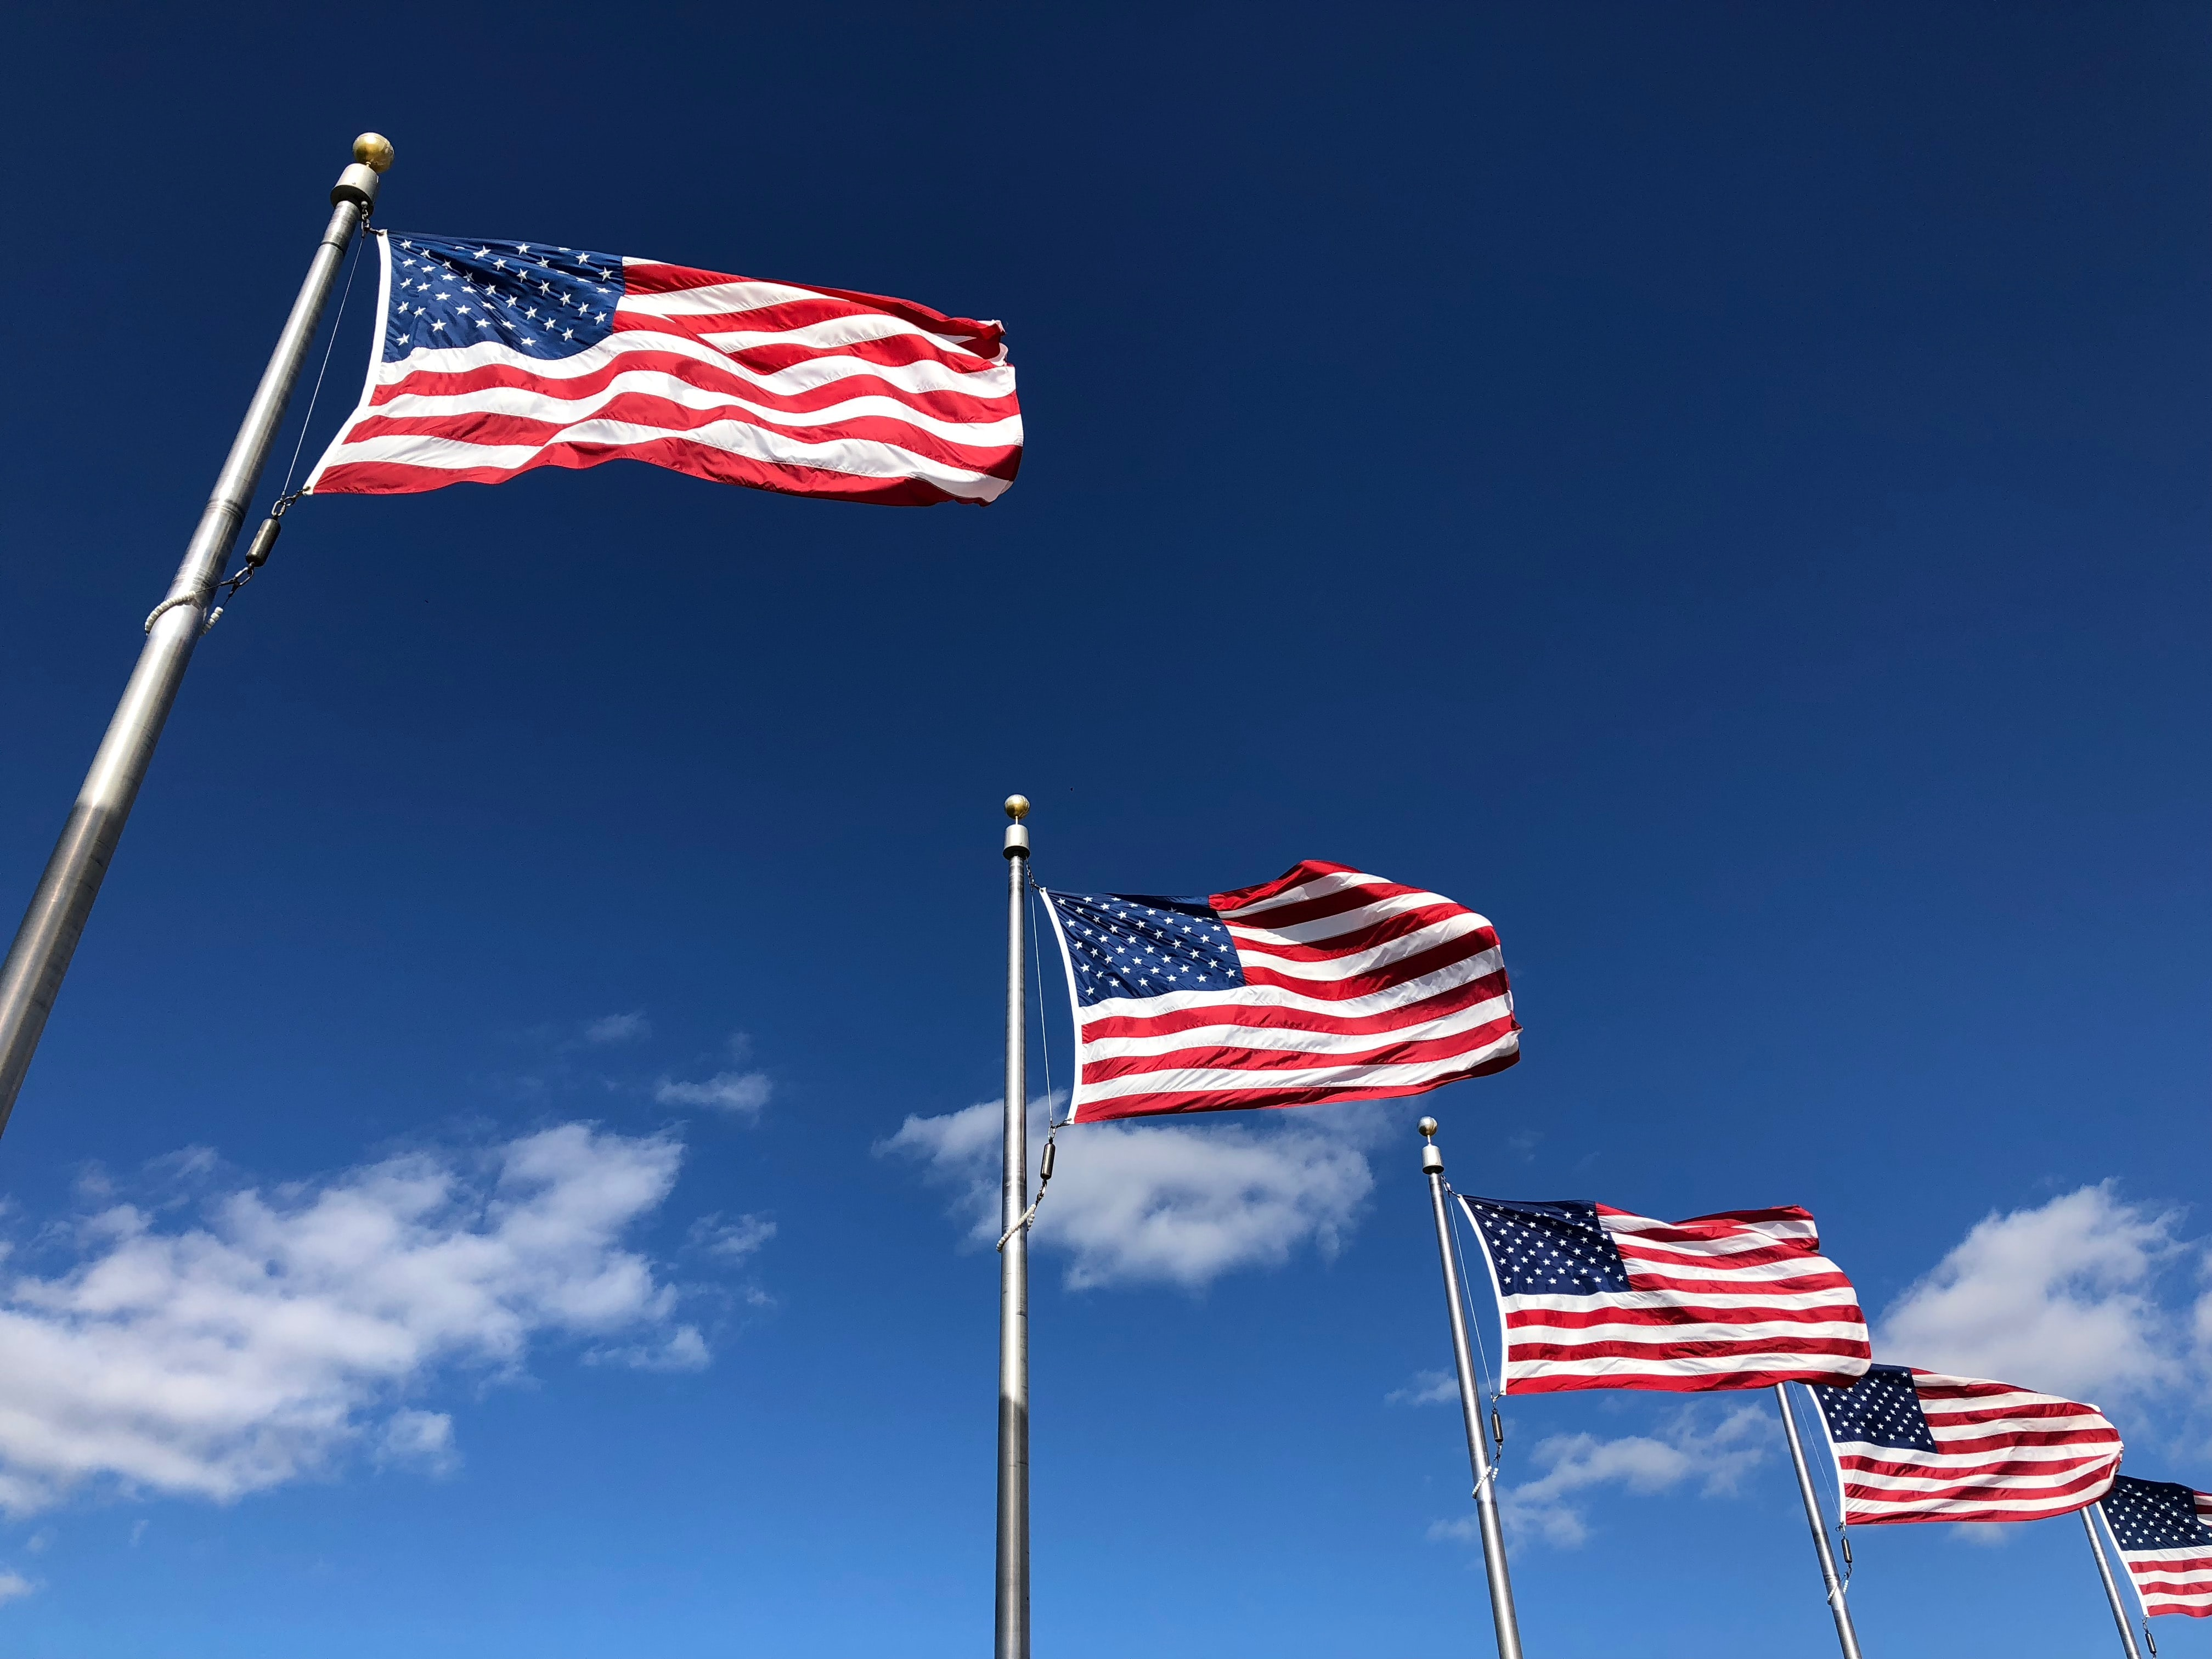 U.S. American flags under clear sky